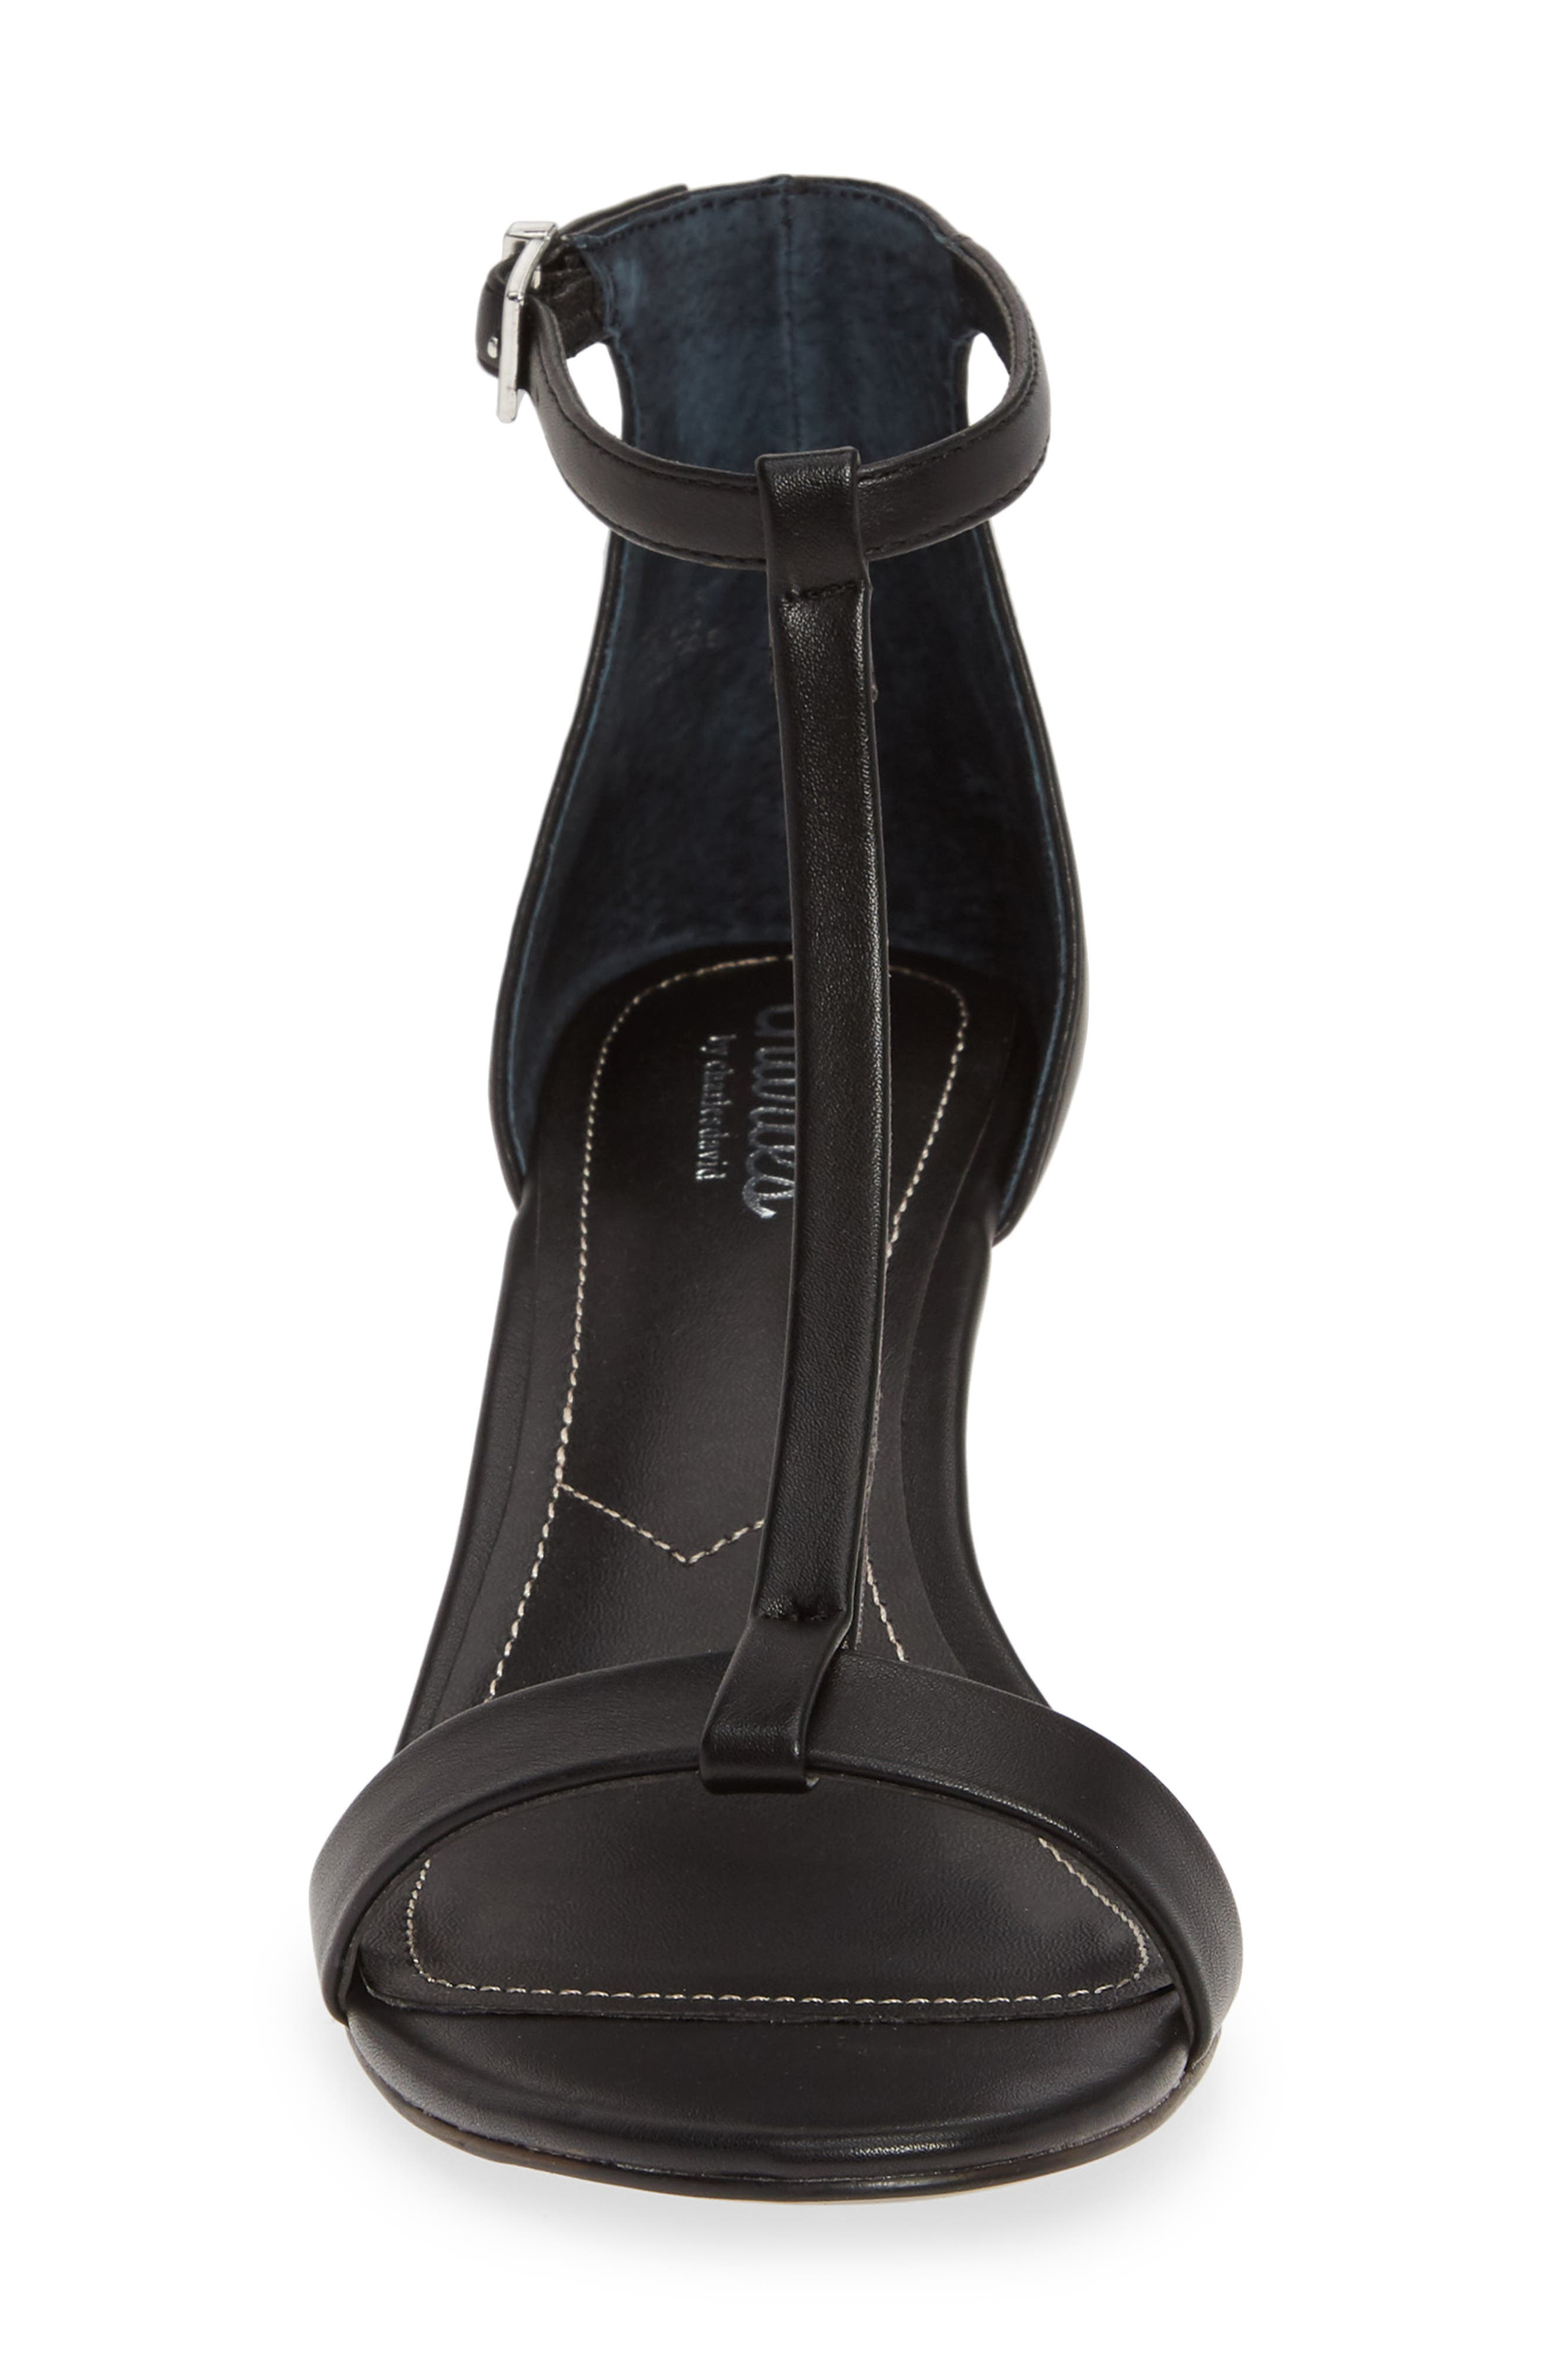 CHARLES BY CHARLES DAVID, Georgette Wedge Sandal, Alternate thumbnail 4, color, BLACK FAUX LEATHER